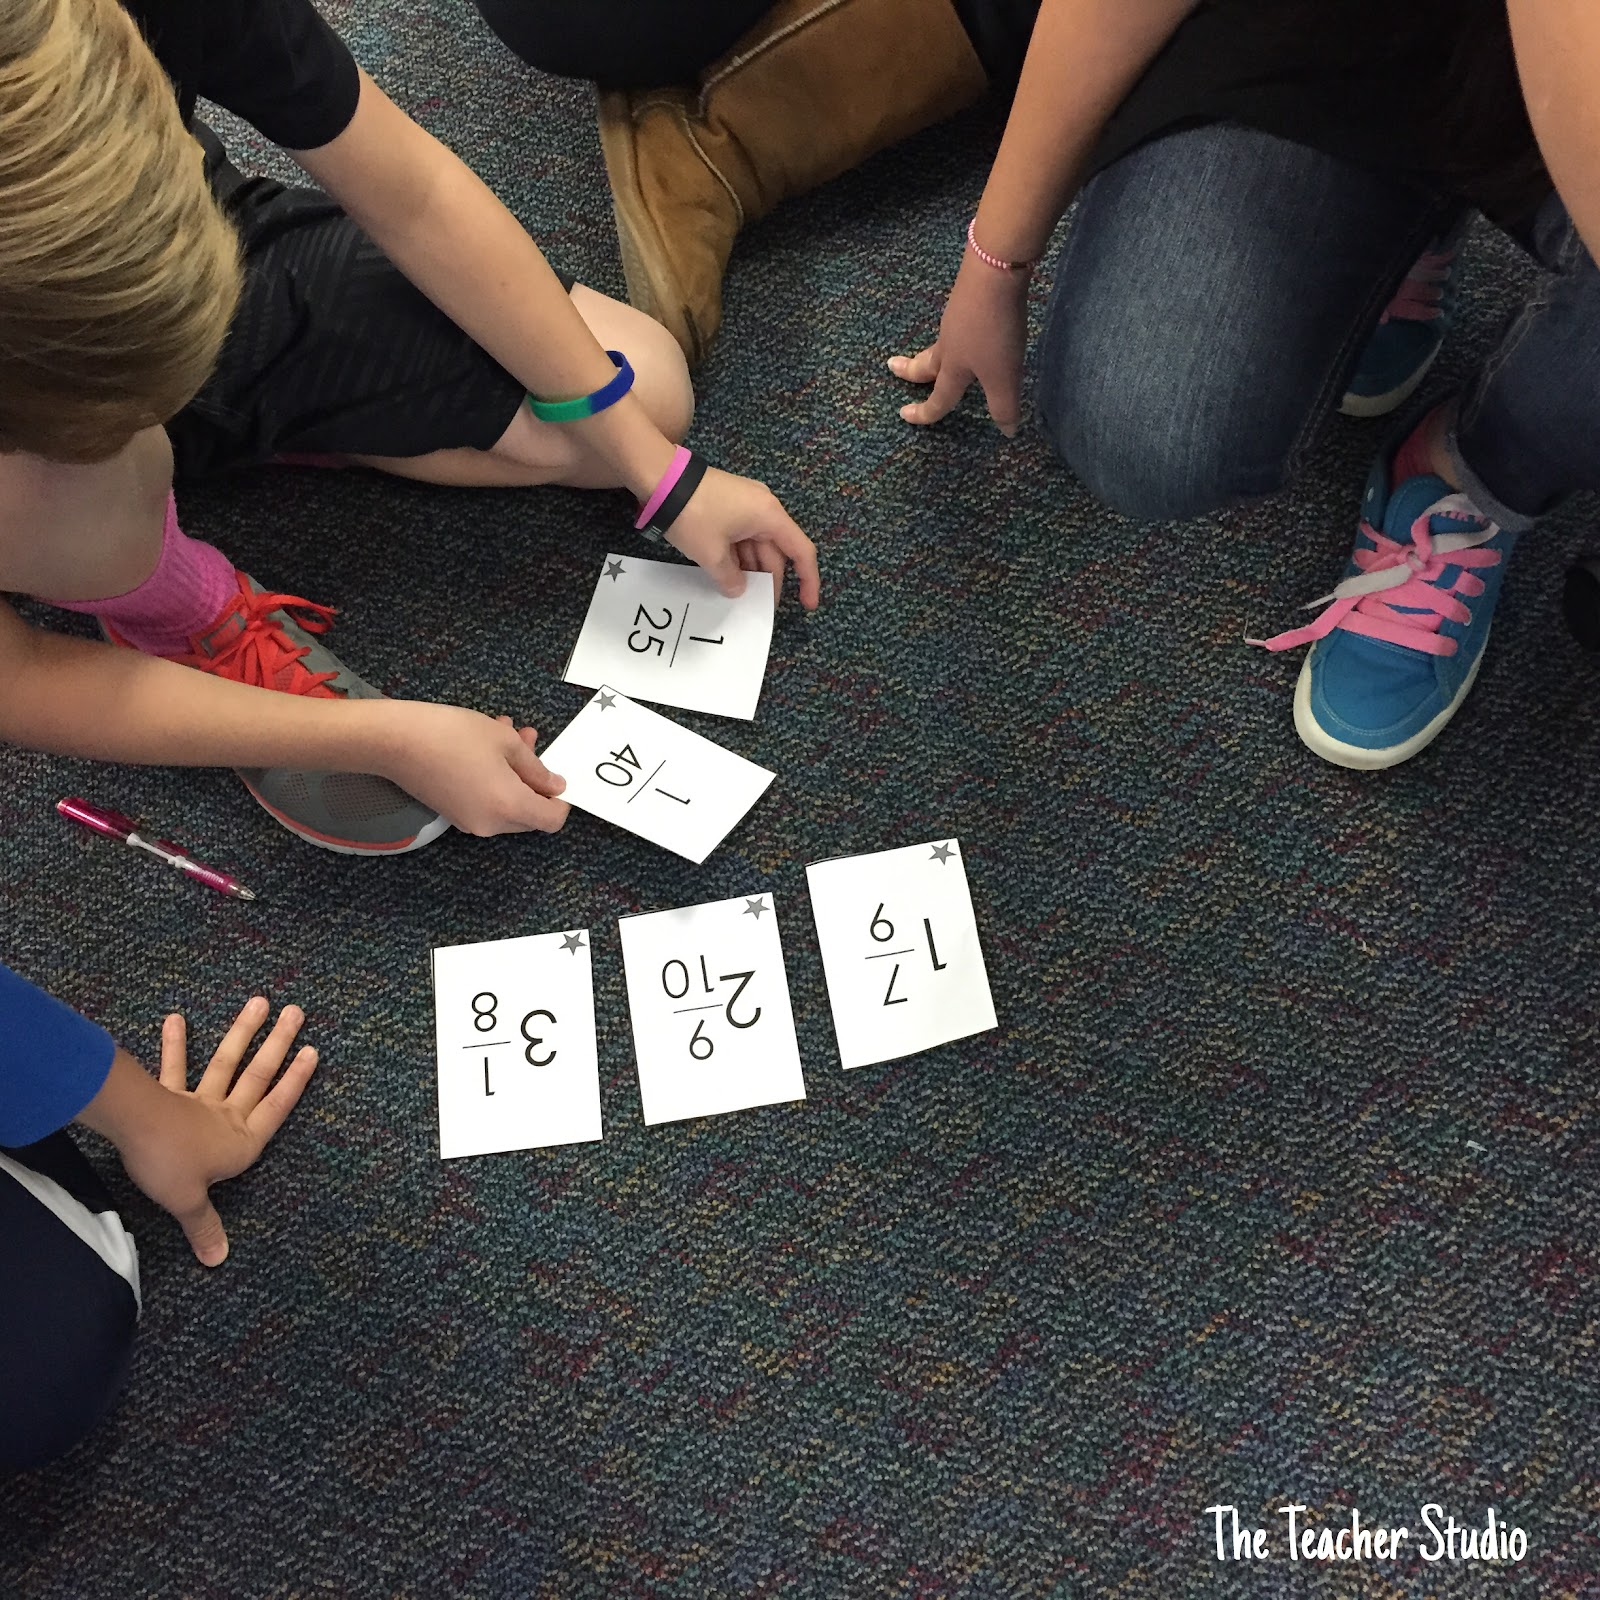 Teaching teamwork is so critical! We need to coach this and put students in positions where they can be successful together in math workshop. Here's how I do that.